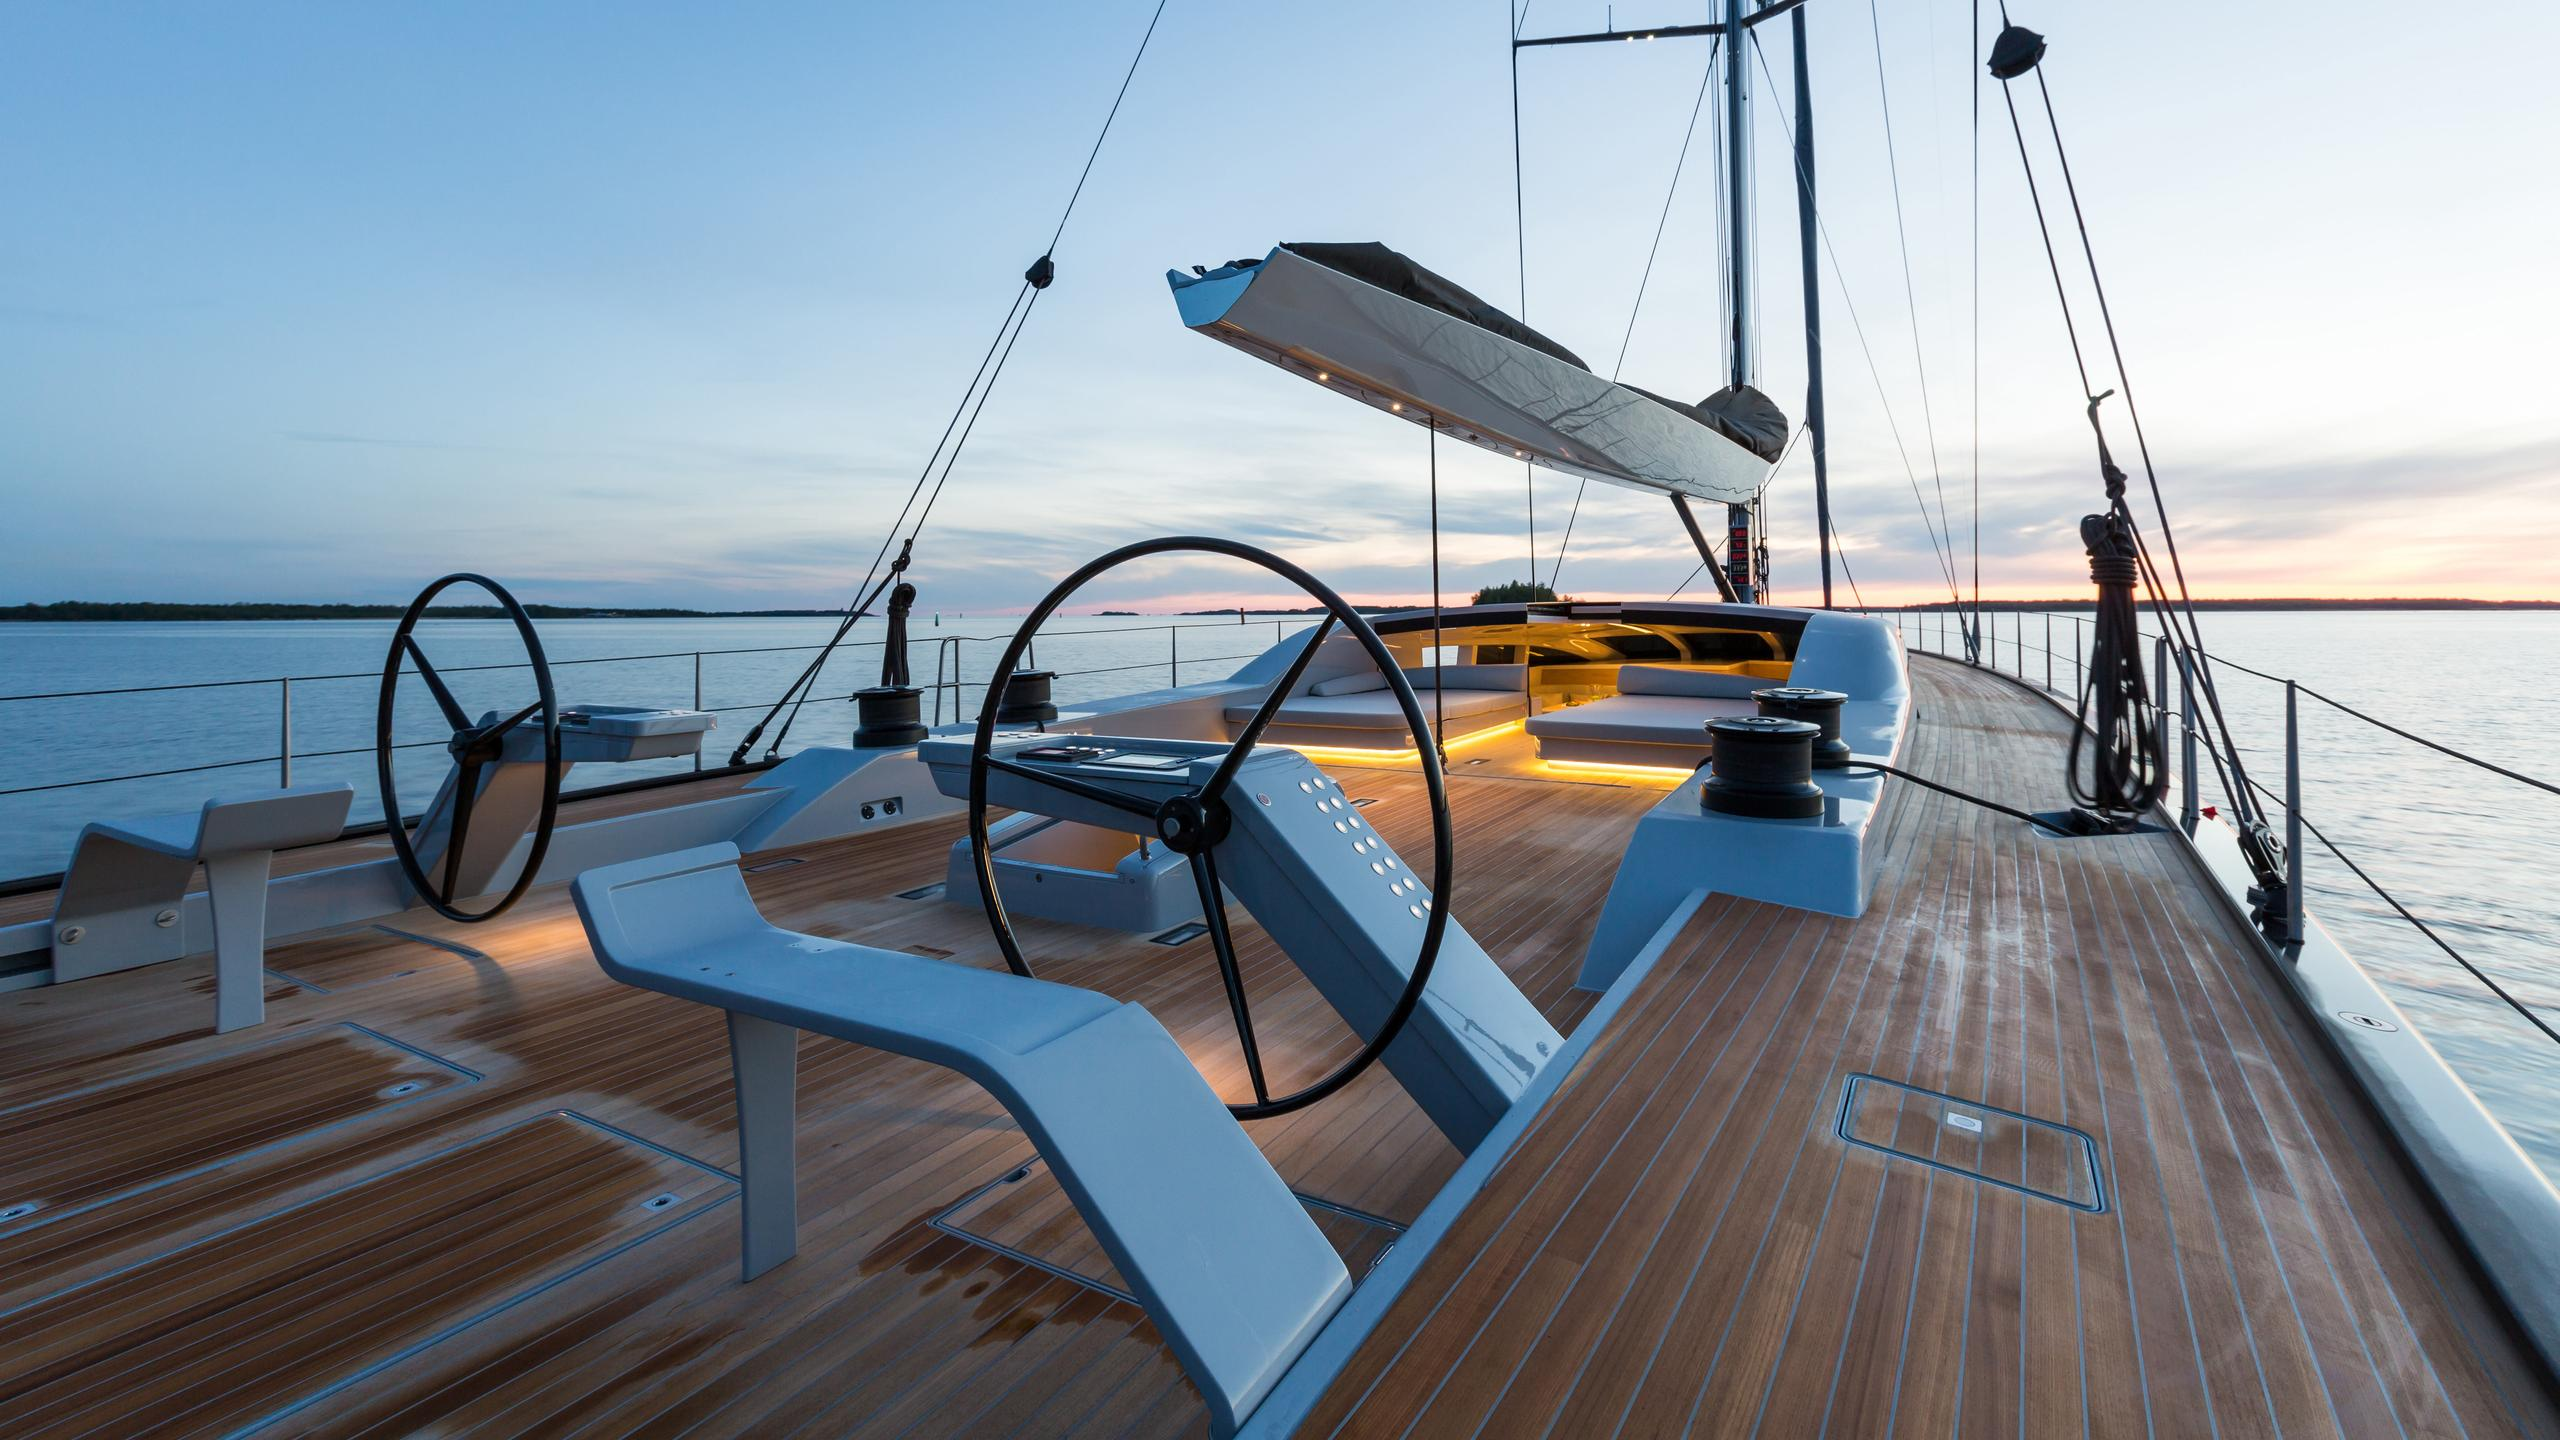 Winwin-sailing-yacht-baltic-2014-33m-deck